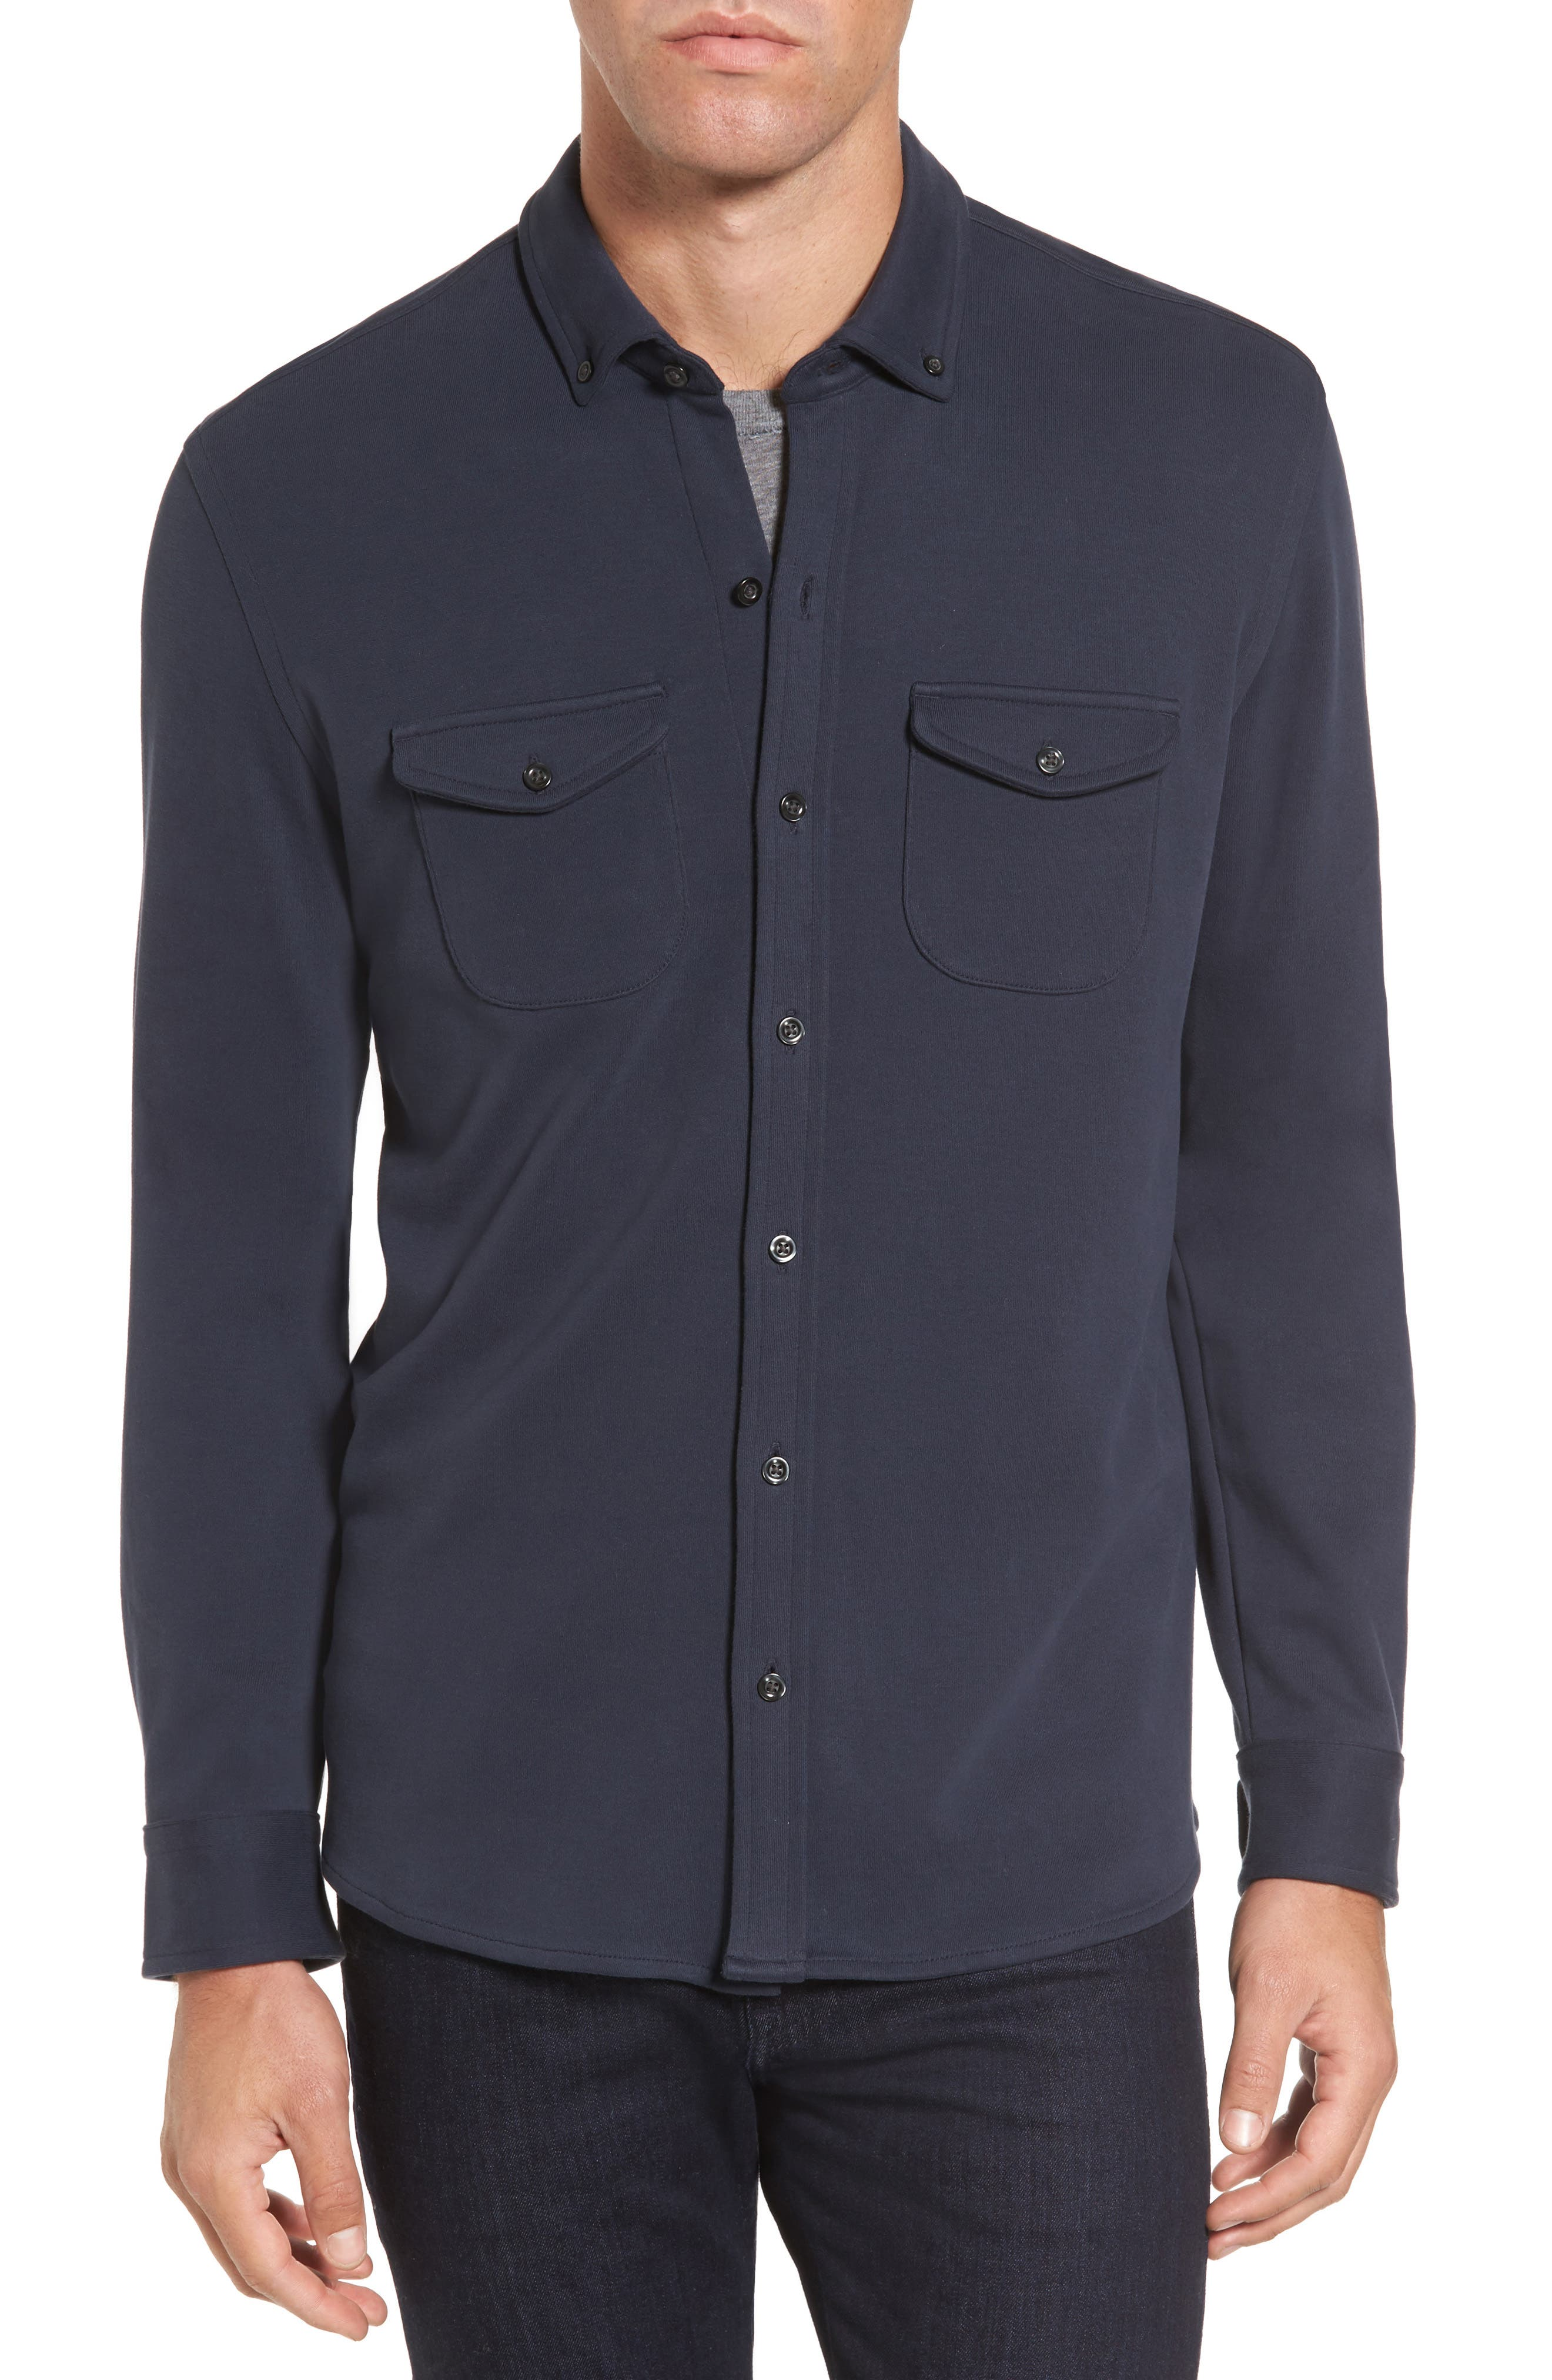 Alternate Image 1 Selected - Michael Bastian Trim Fit Pima Cotton Knit Sport Shirt